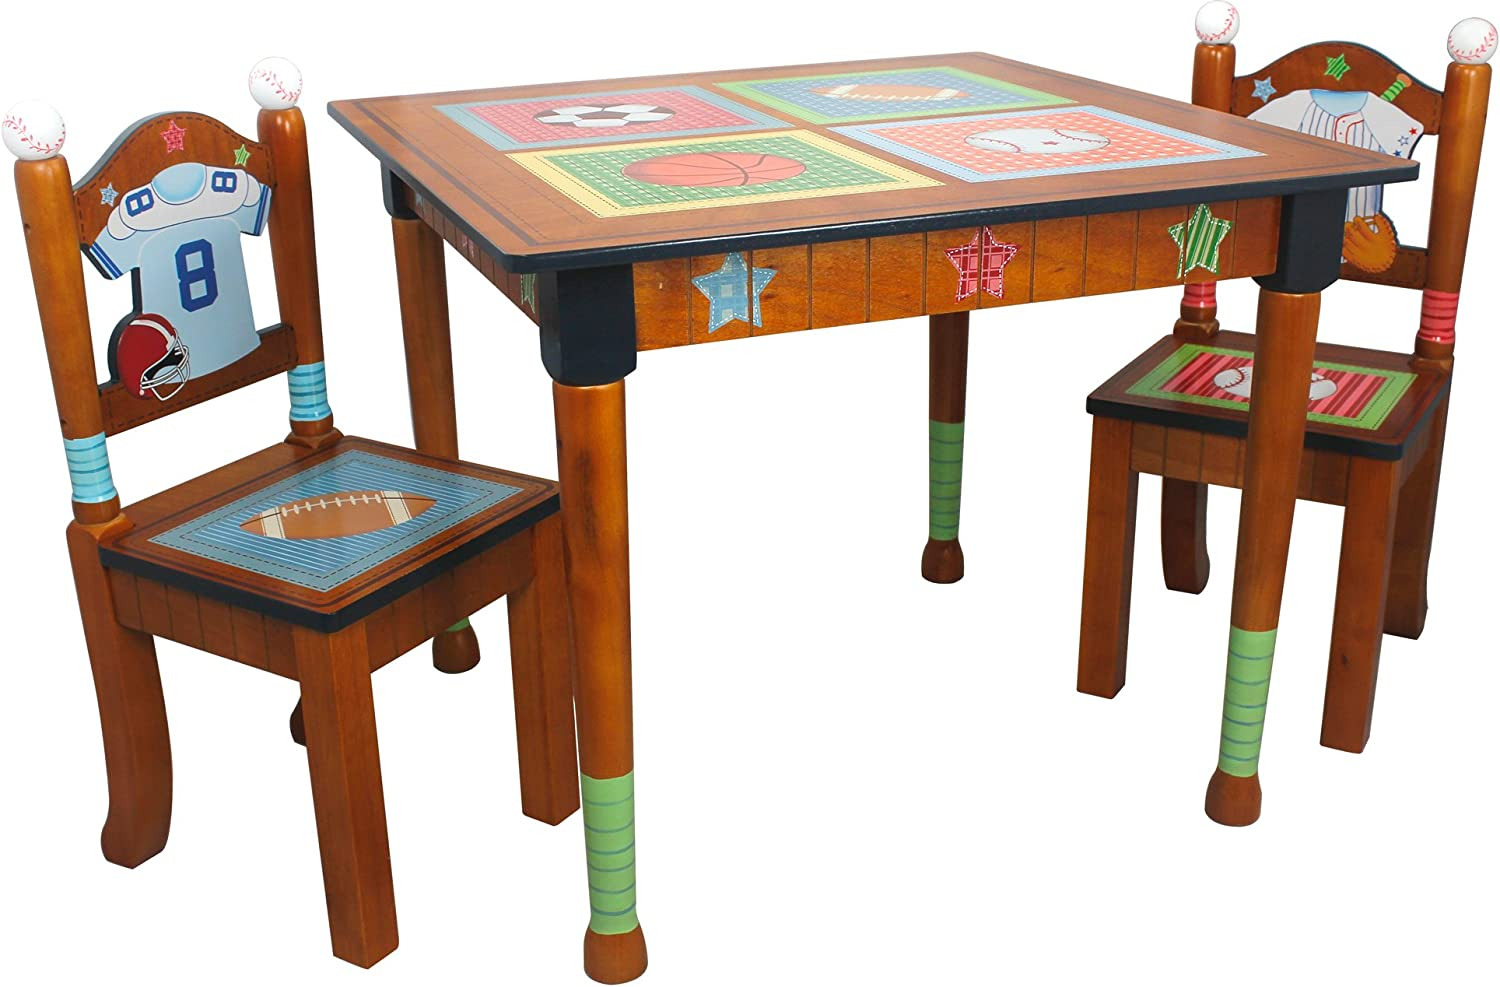 Fantasy Fields - Lil' Sports Fan Thematic Hand Crafted Kids Wooden Table and 2 Chairs Set |Imagination Inspiring Hand Crafted & Hand Painted Details Non-Toxic, Lead Free Water-based Paint